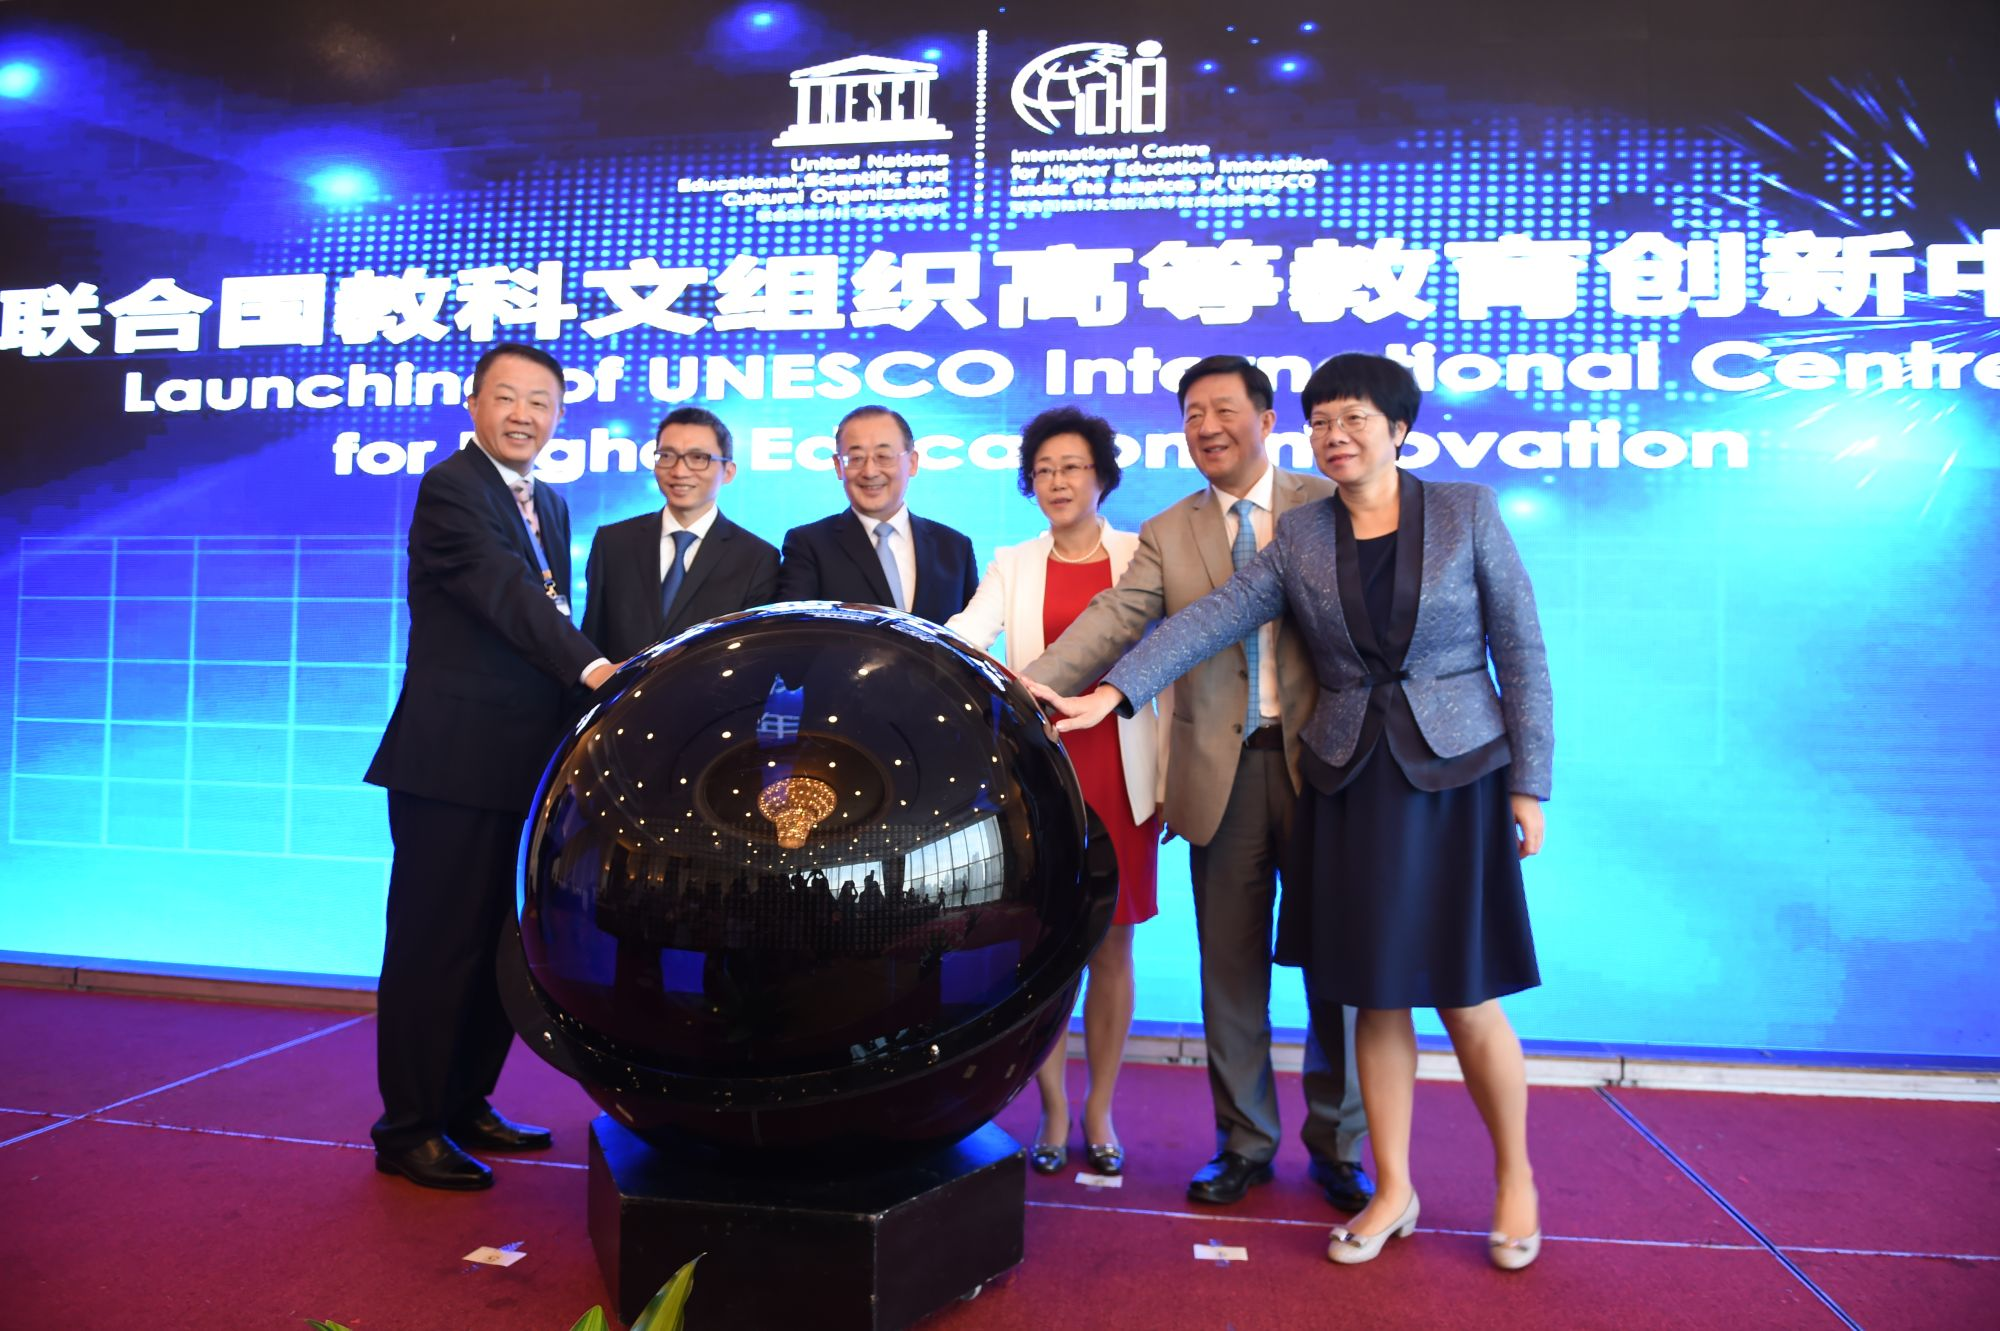 UNESCO International Centre for Higher Education Innovation Launched in Shenzhen